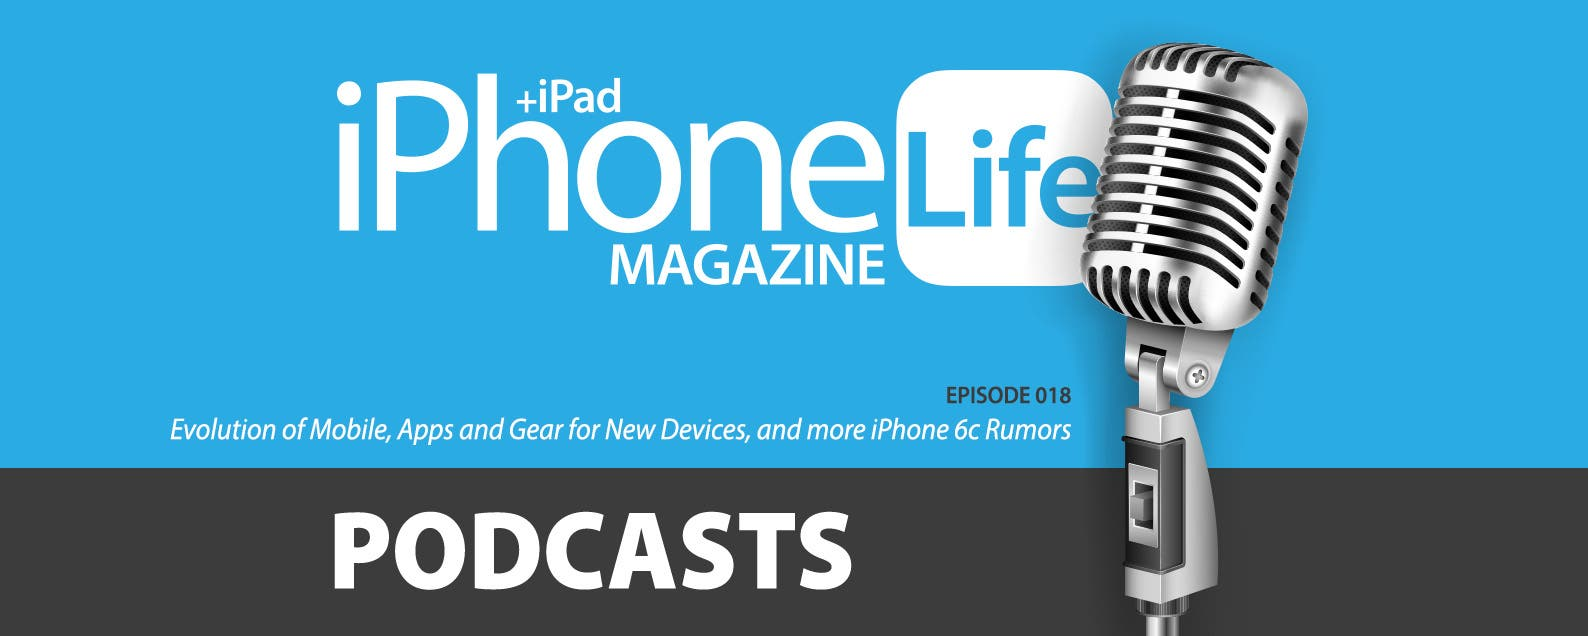 Evolution of Mobile, Apps and Gear for New Devices, and iPhone 6c Rumors